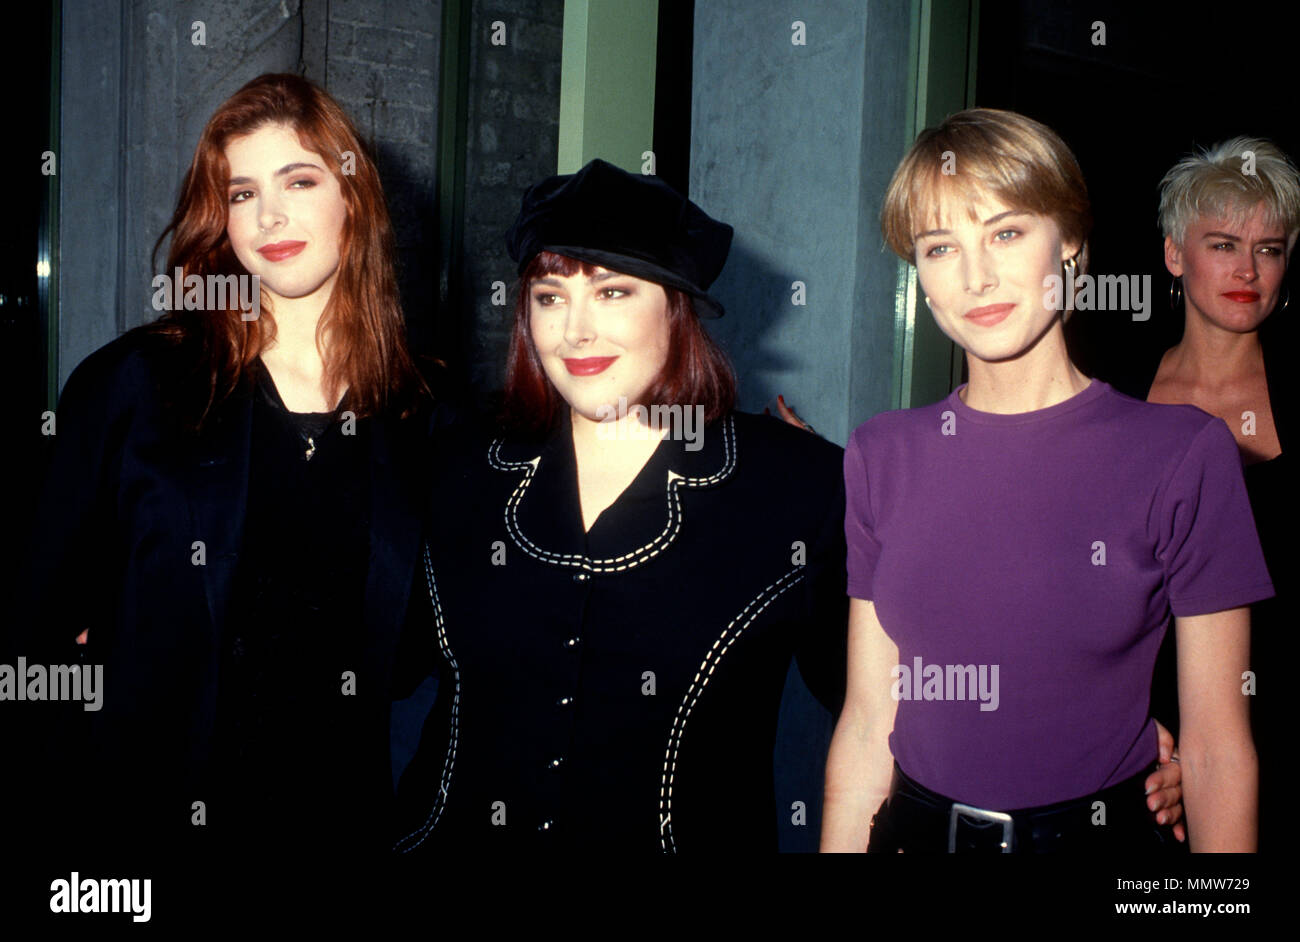 LOS ANGELES, CA - JULY 09: (L-R) Singers Wendy Wilson, Carnie Wilson and Chynna Phillips of Wilson Phillips attend press conference on July 9, 1990 in Los Angeles, California. Photo by Barry King/Alamy Stock Photo - Stock Image